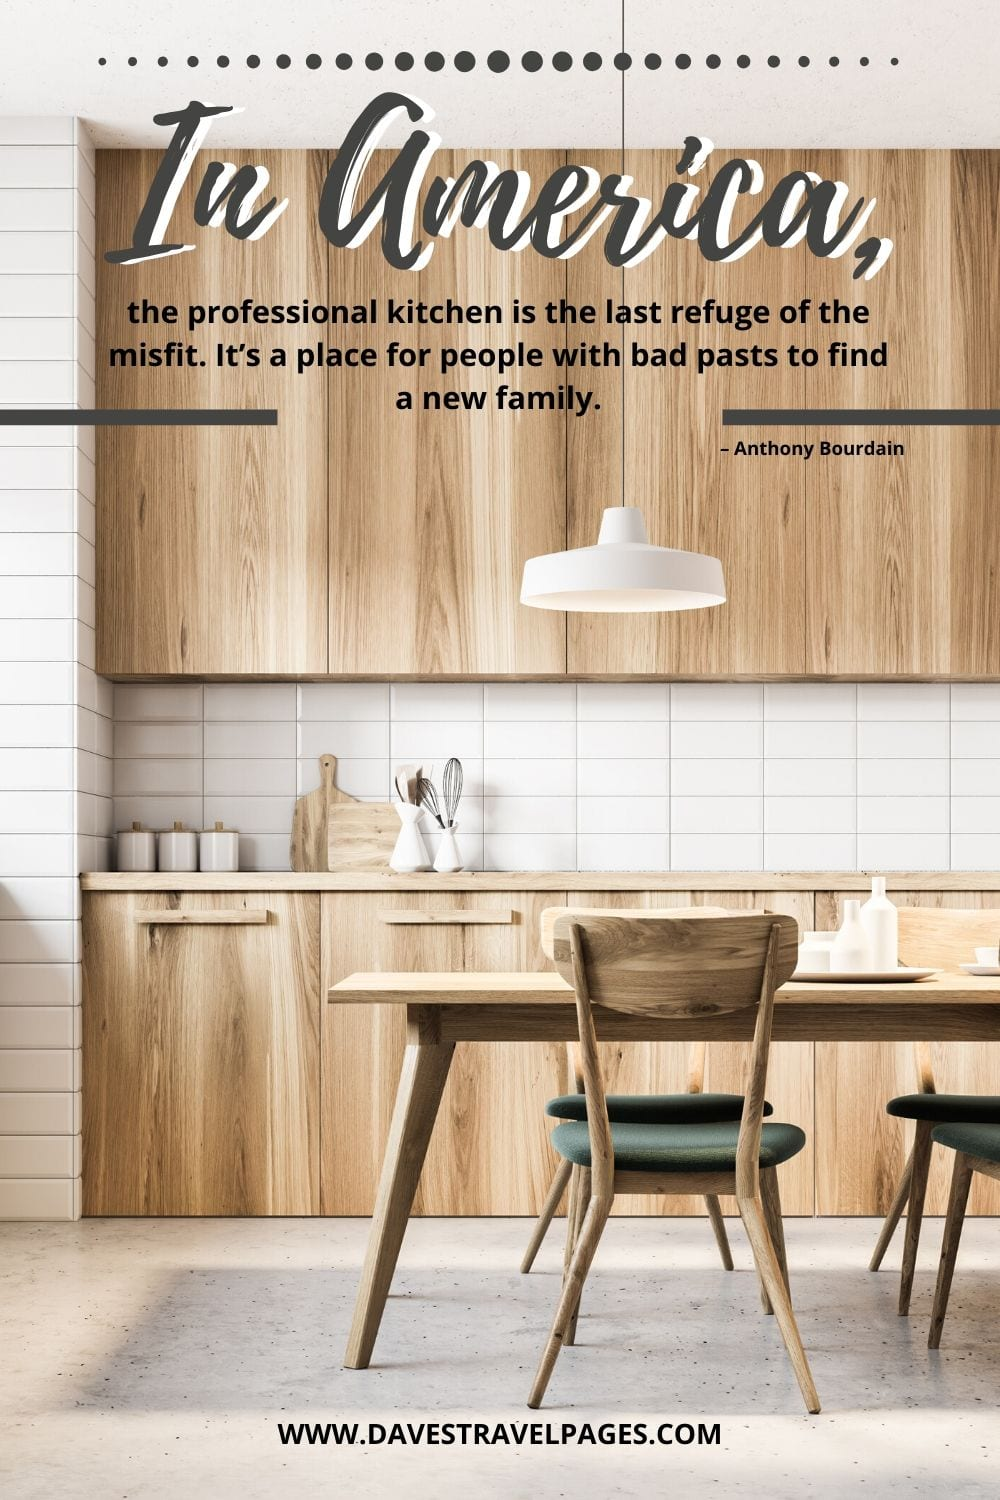 """""""In America, the professional kitchen is the last refuge of the misfit. It's a place for people with bad pasts to find a new family."""" – Anthony Bourdain on Kitchen Staff"""